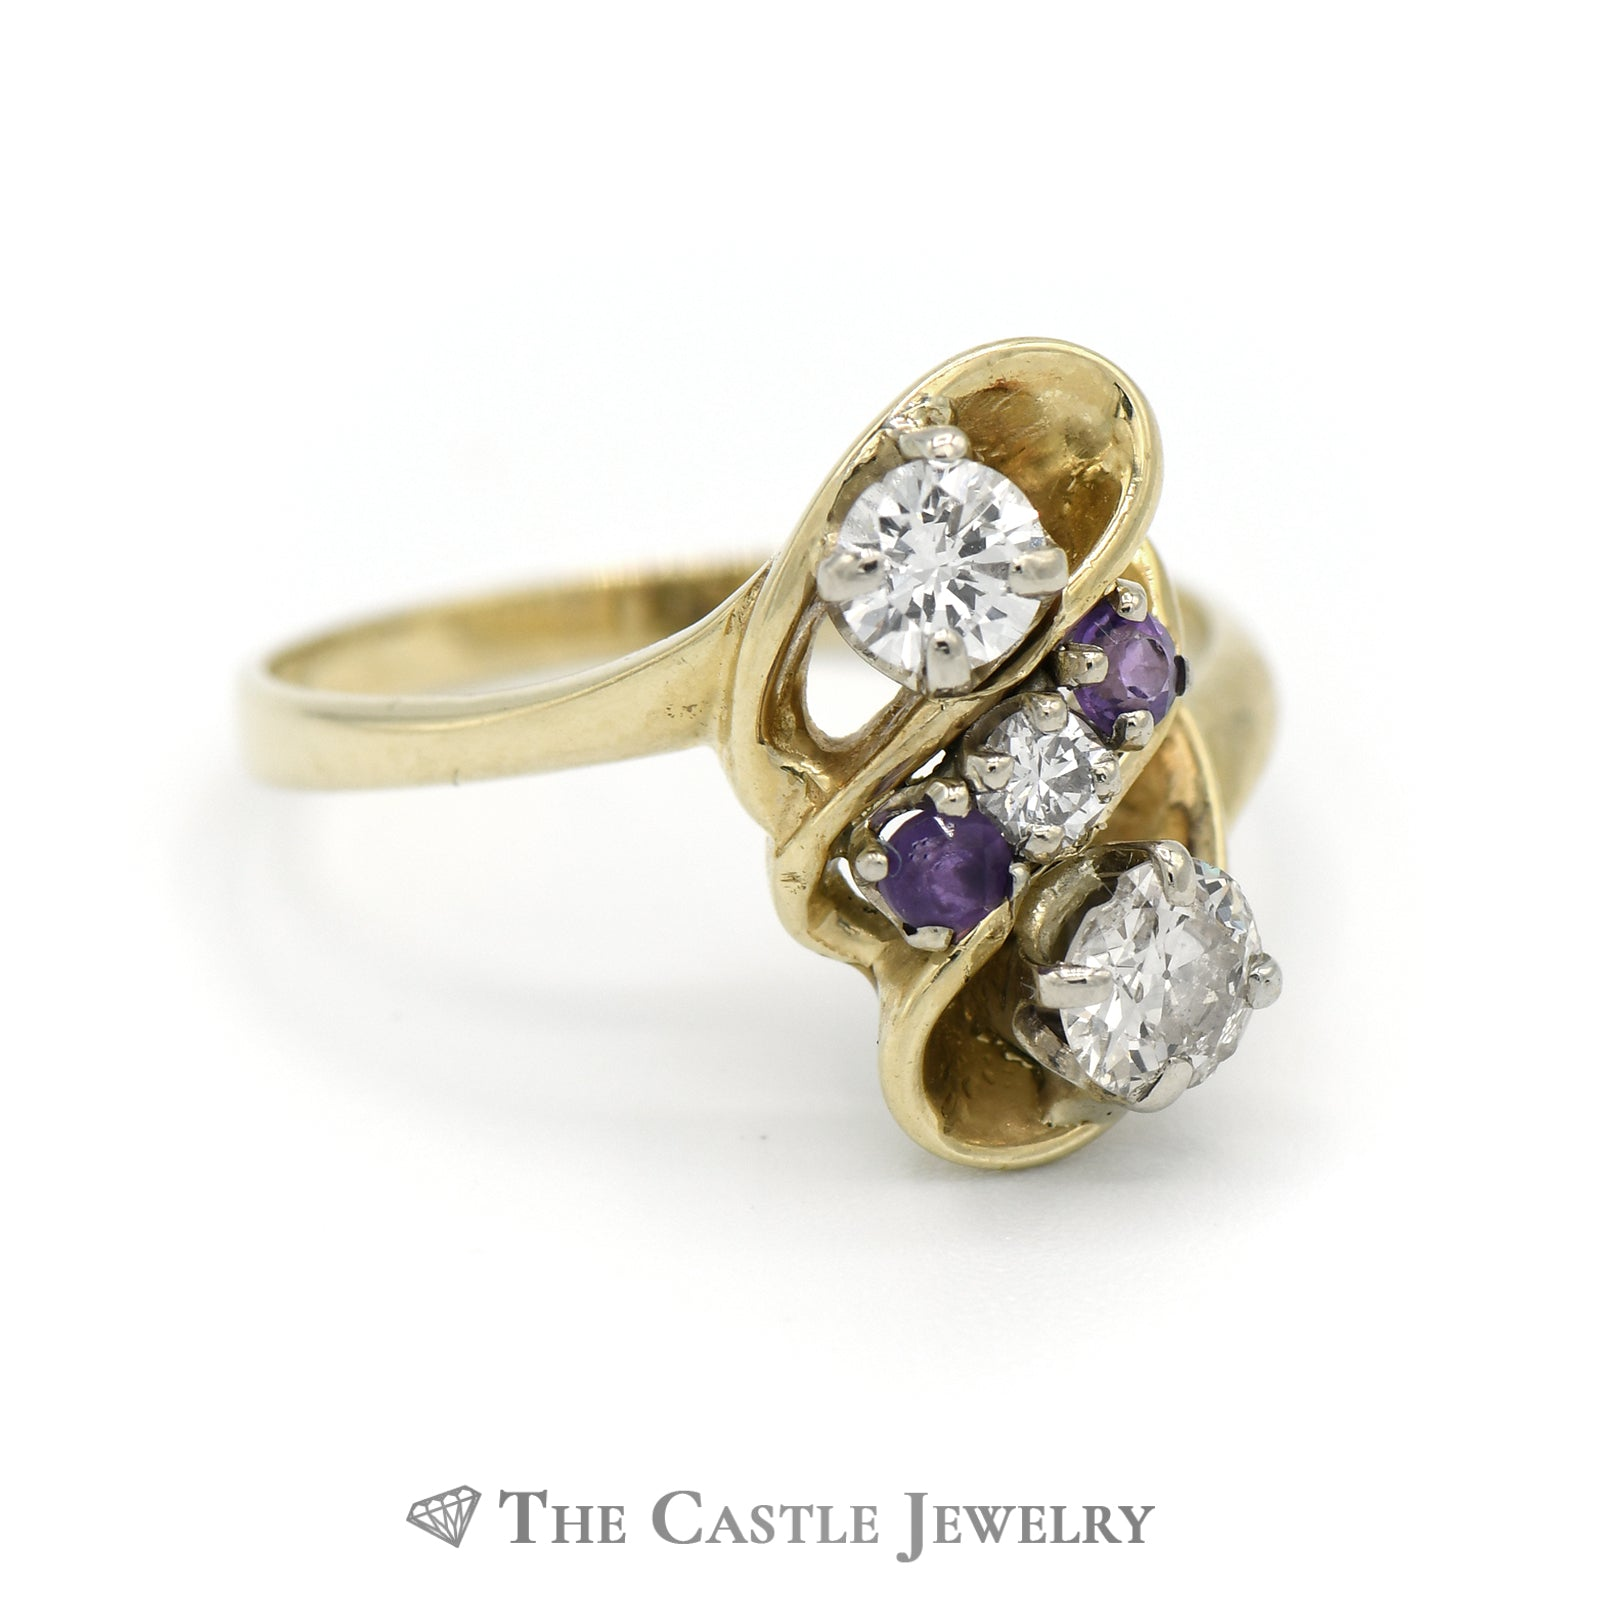 Fancy Design Diamond Ring With Amethyst Accents in 14K Yellow Gold-2